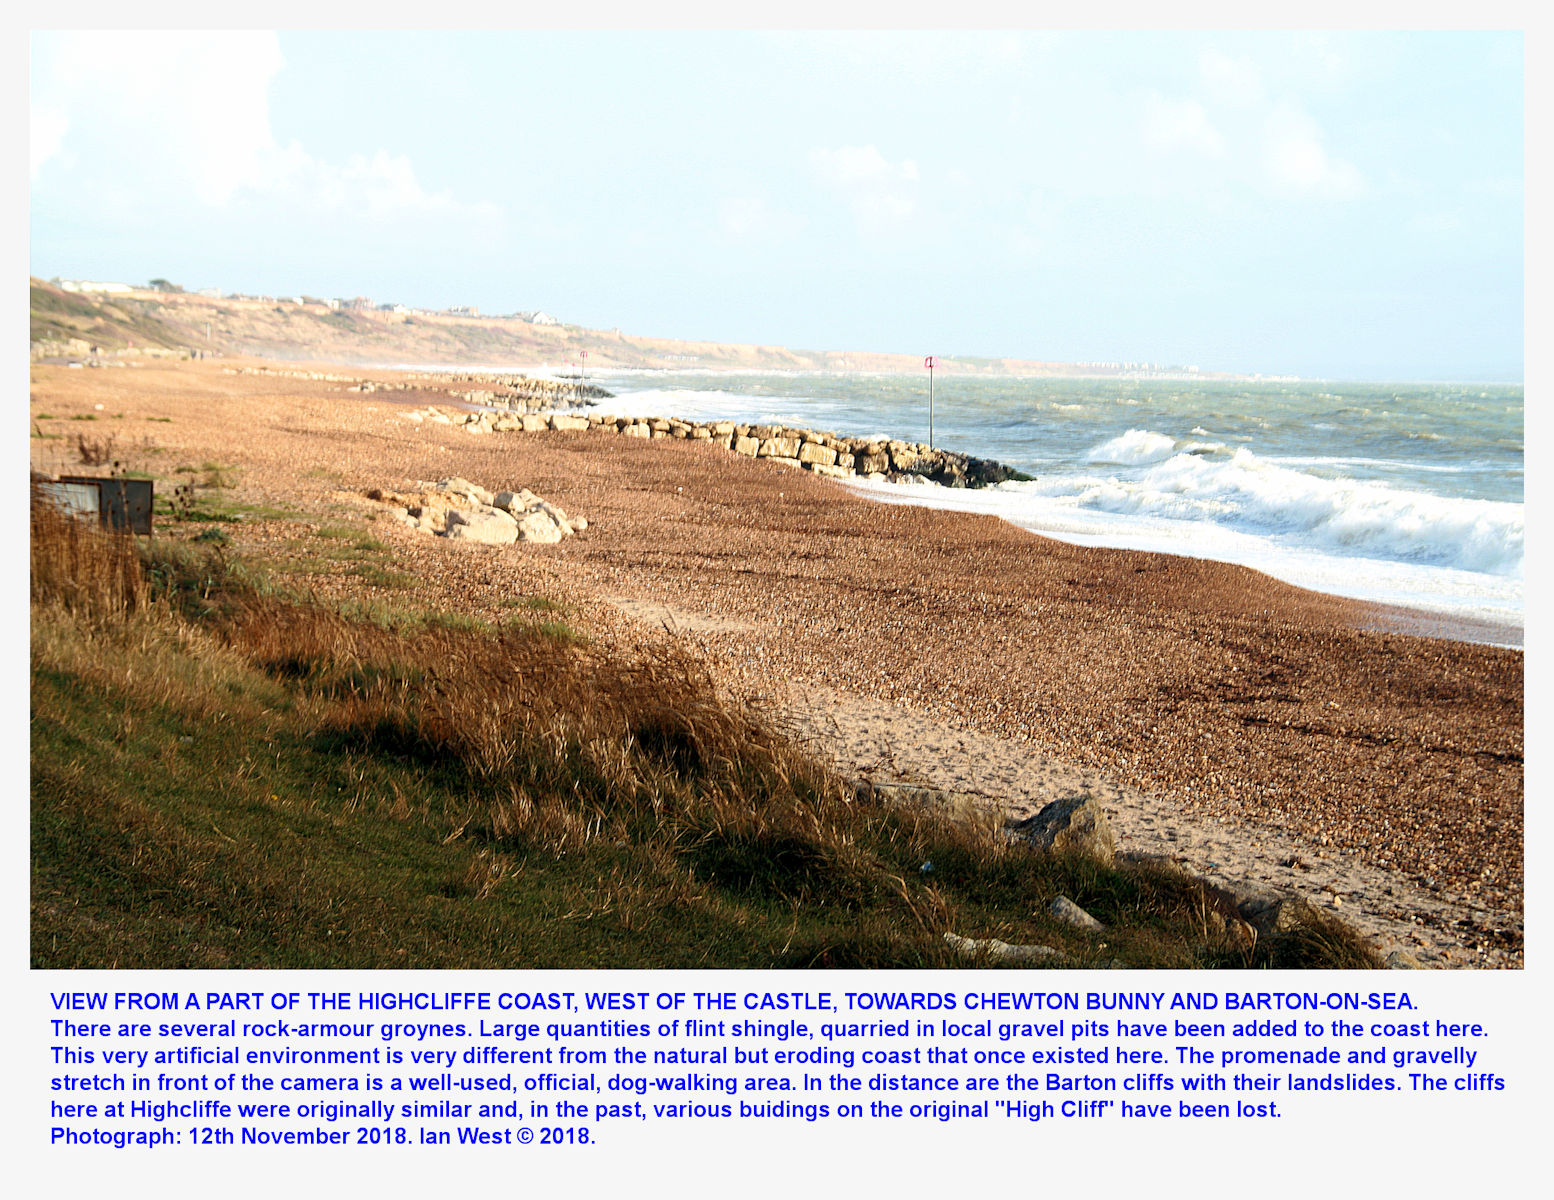 Looking towards Barton-on-Sea from the Highcliffe coast, to the east of  Highcliffe Castle, with a rough sea, on 12th November 2018